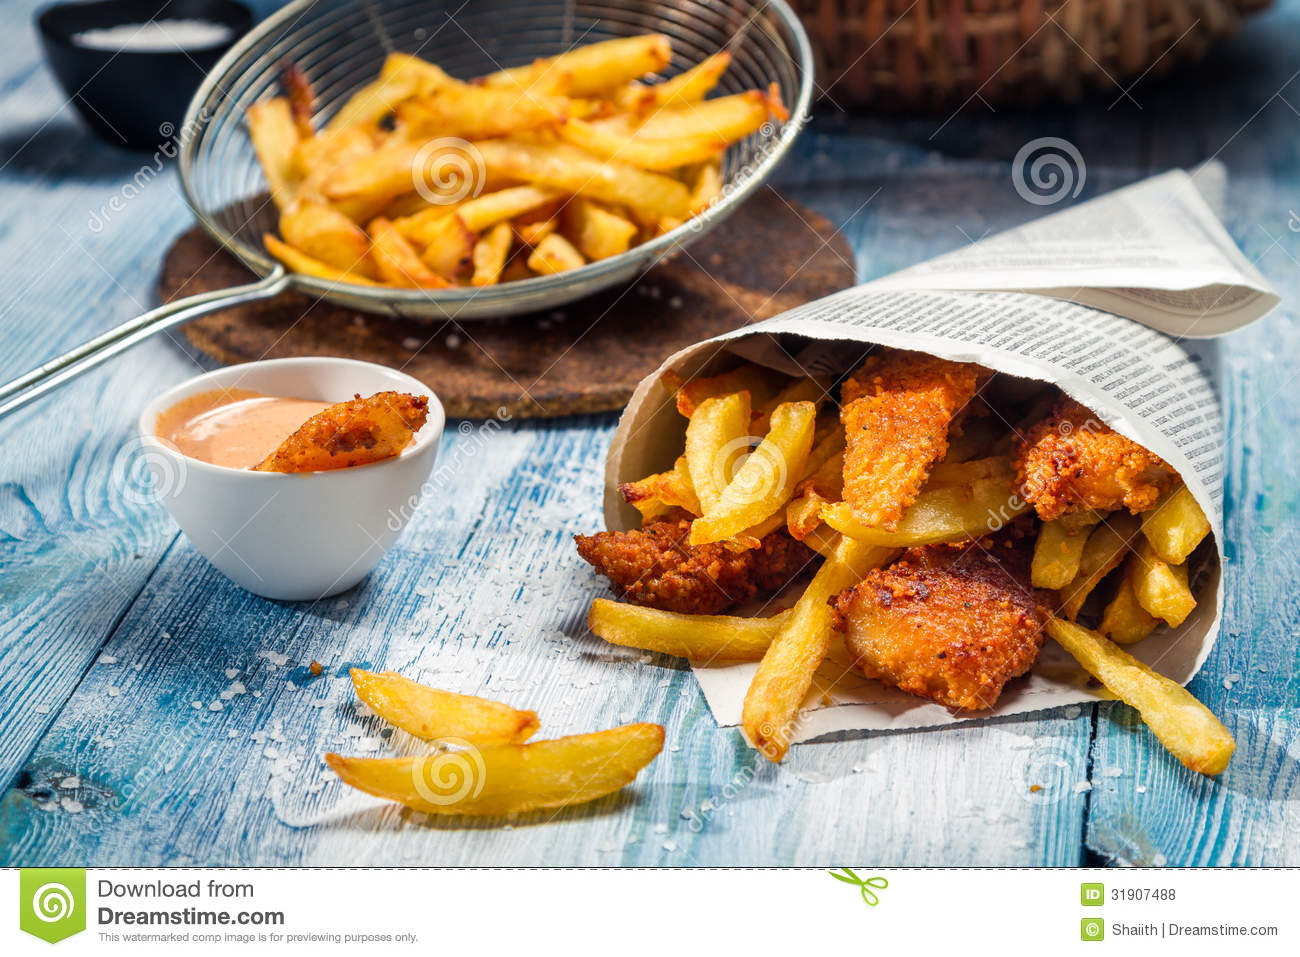 Fish & Chips Served In The Newspaper Royalty Free Stock Photos - Image: 31907488